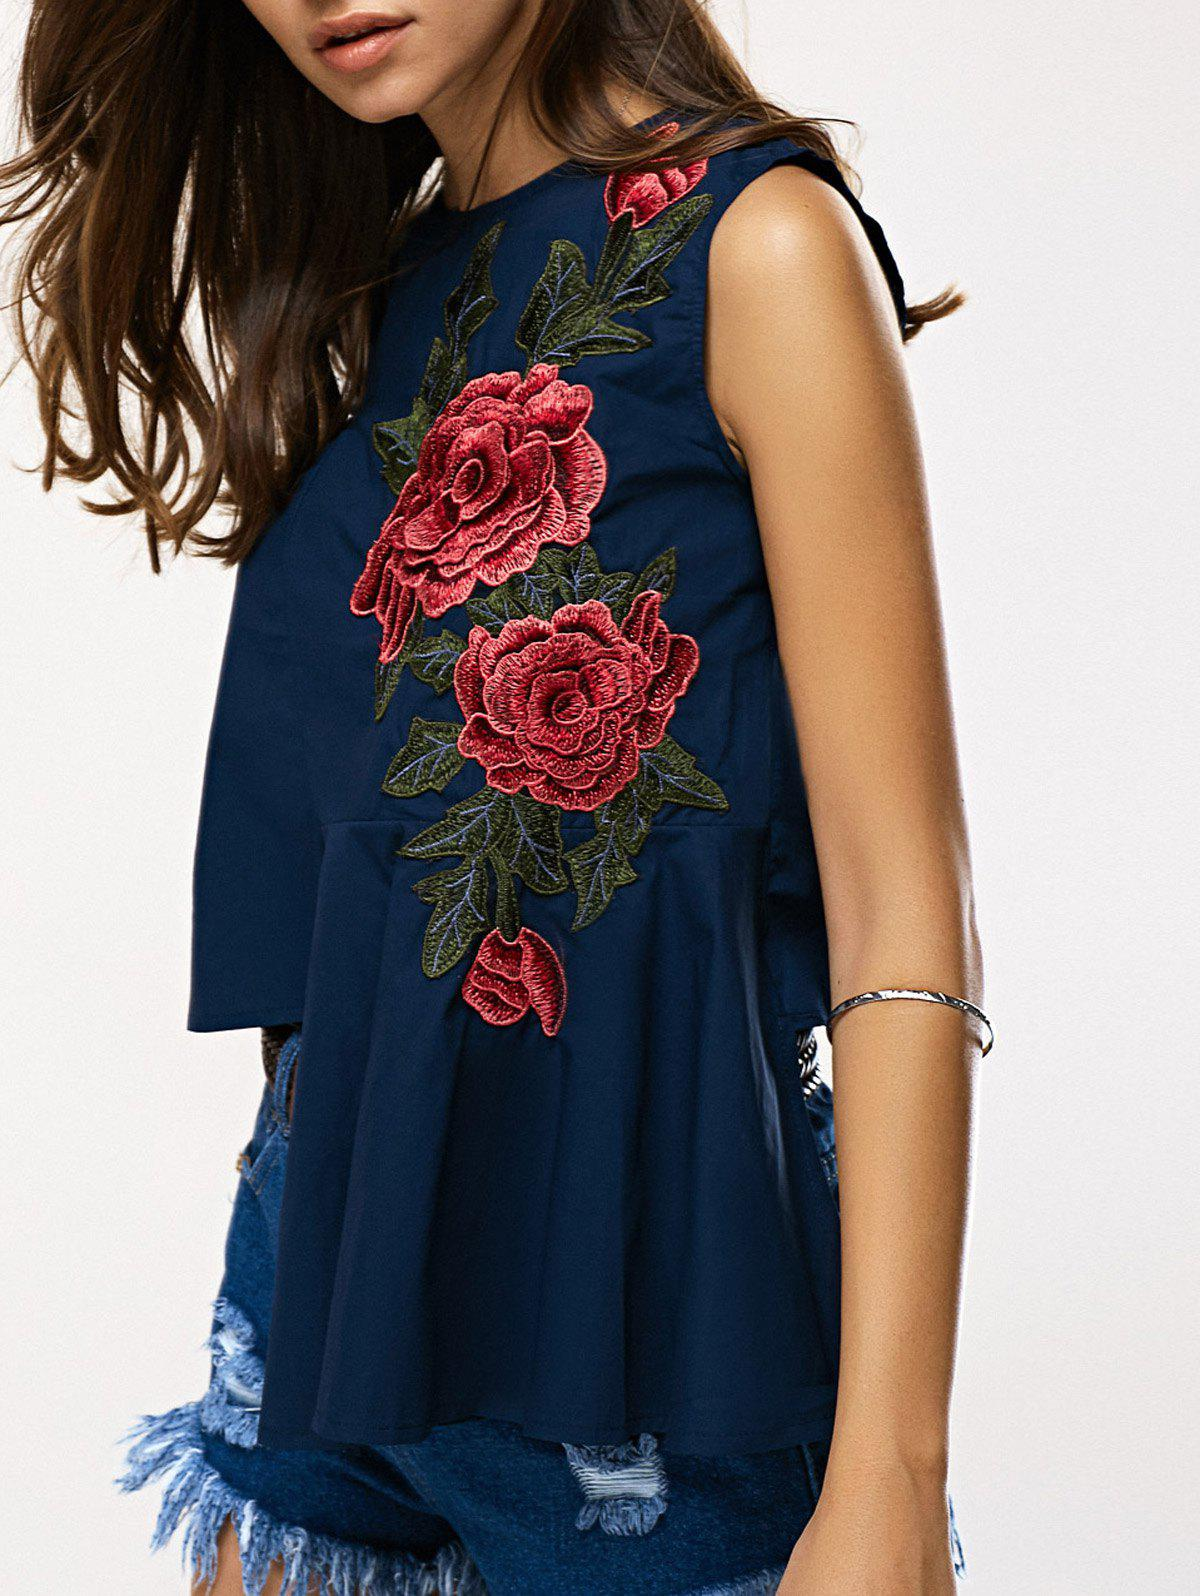 Chic Asymmetrical Rose Embroidery Women's Blouse - DEEP BLUE ONE SIZE(FIT SIZE XS TO M)